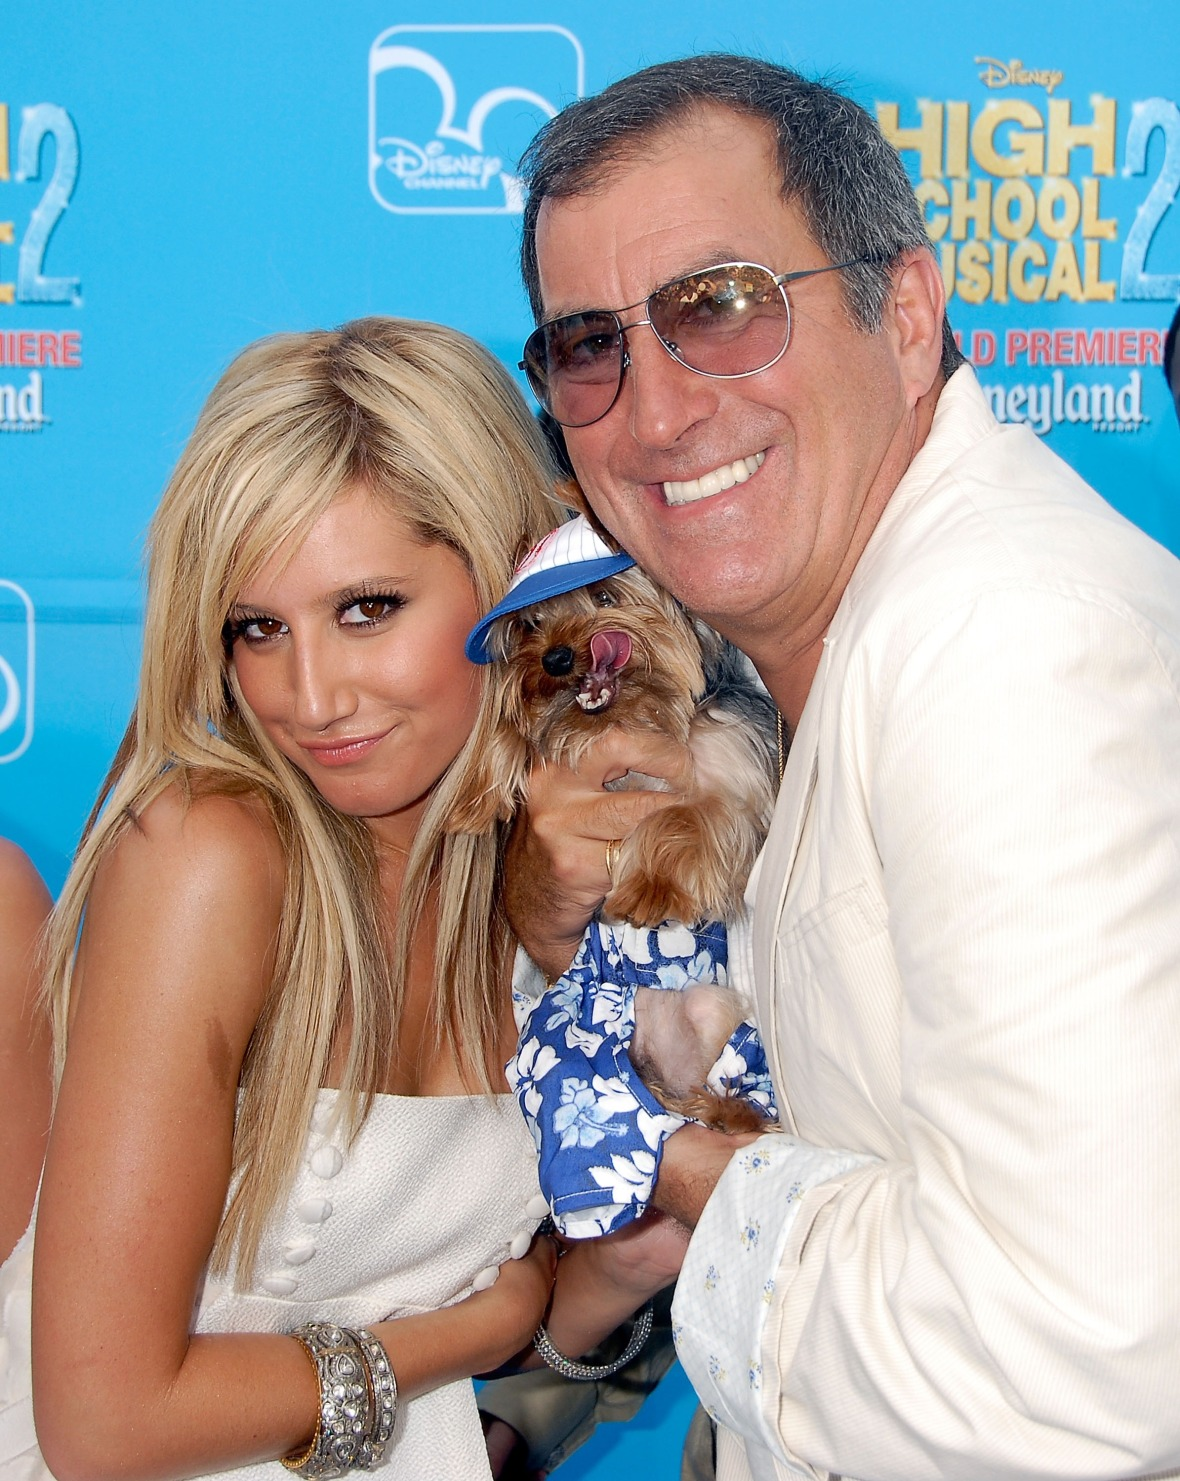 ashley tisdale kenny ortega hsm 2 premiere